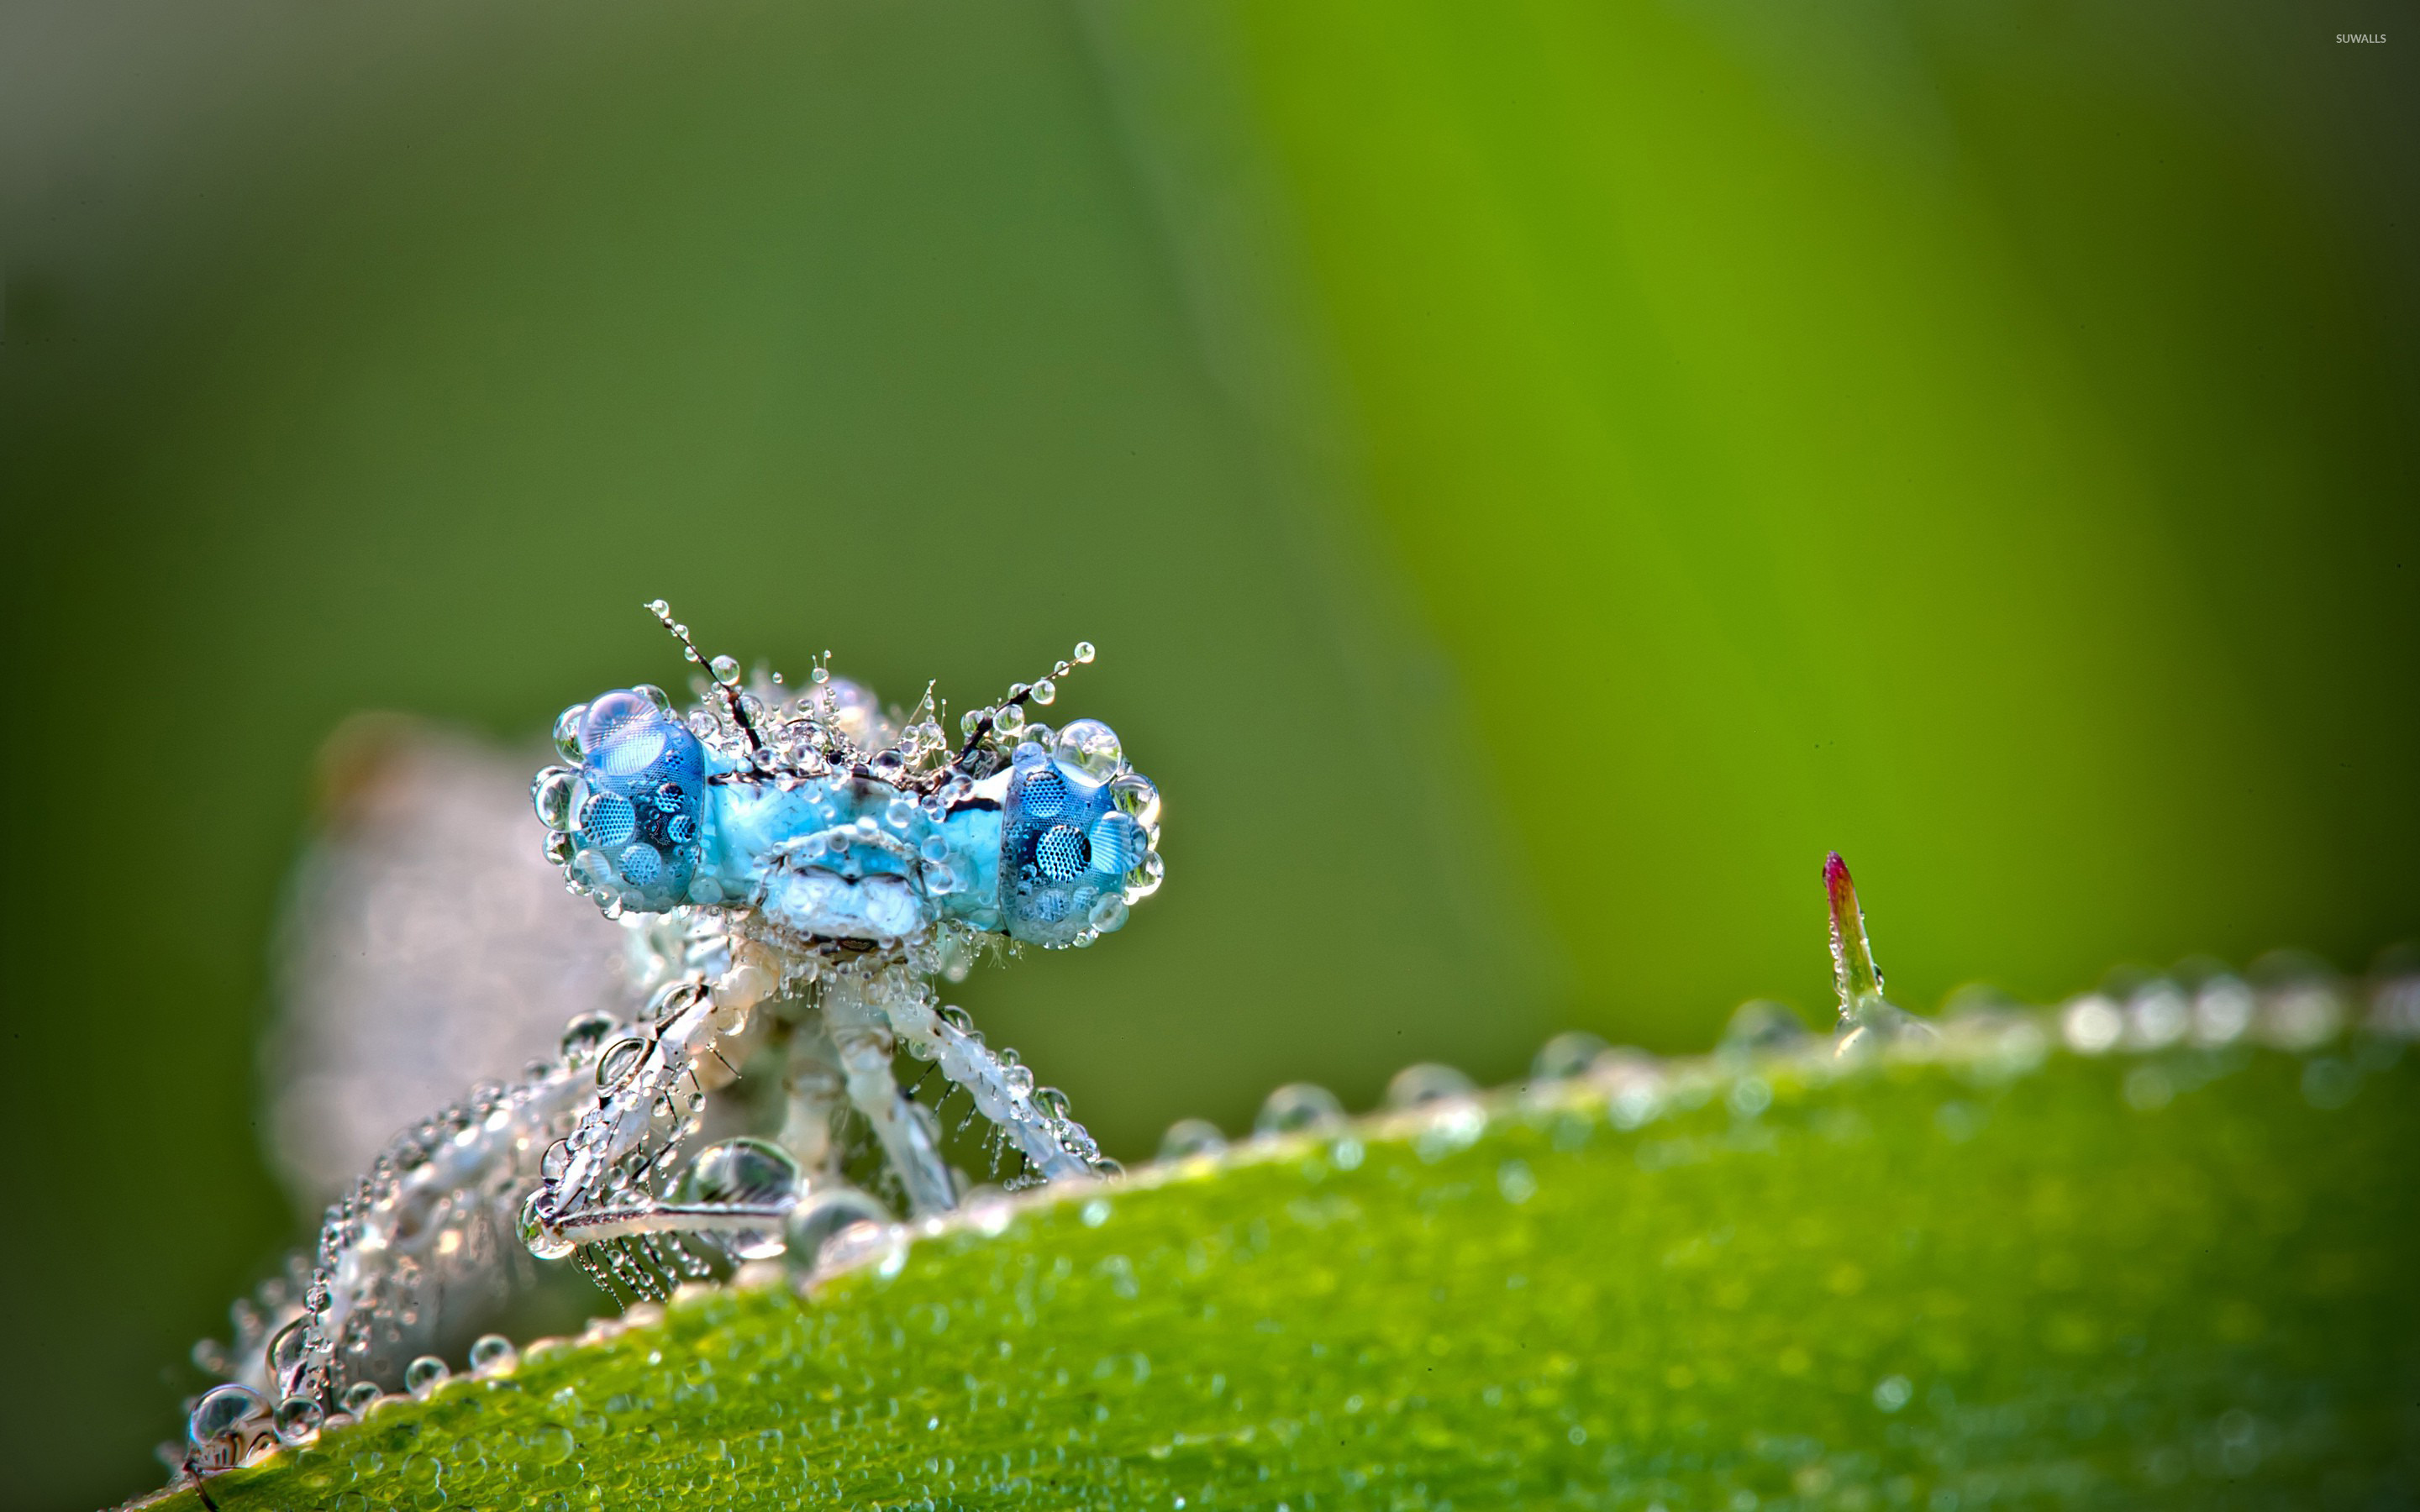 Dragonfly wallpaper   Animal wallpapers   16249 1366x768